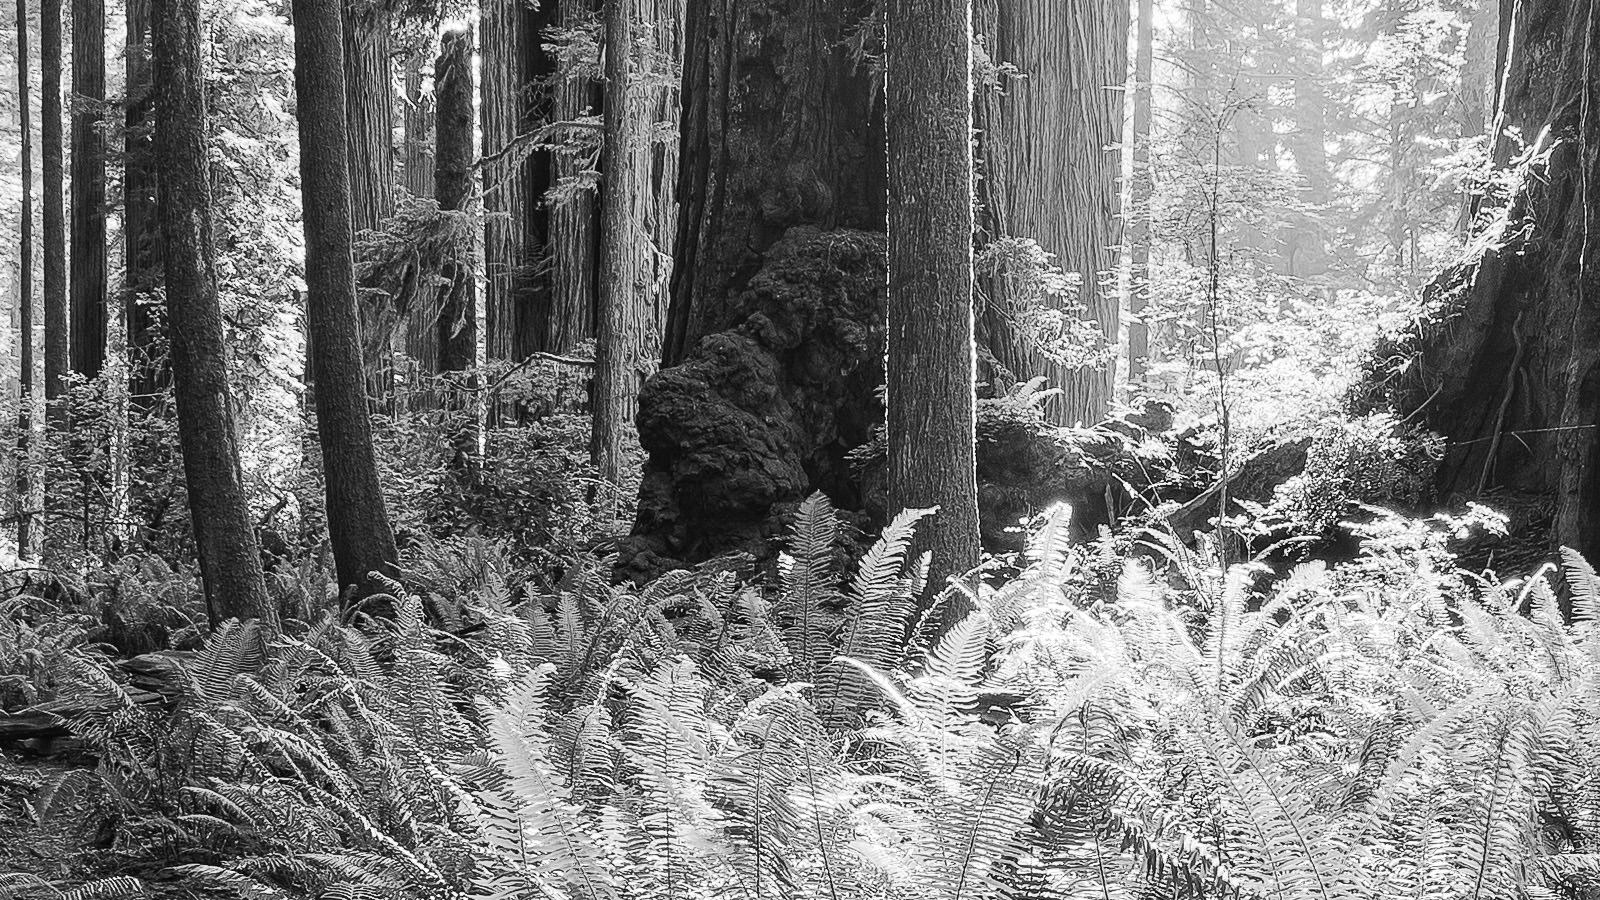 Redwoods Detail - Californian Redwoods, California Black & White Fine Art Photography